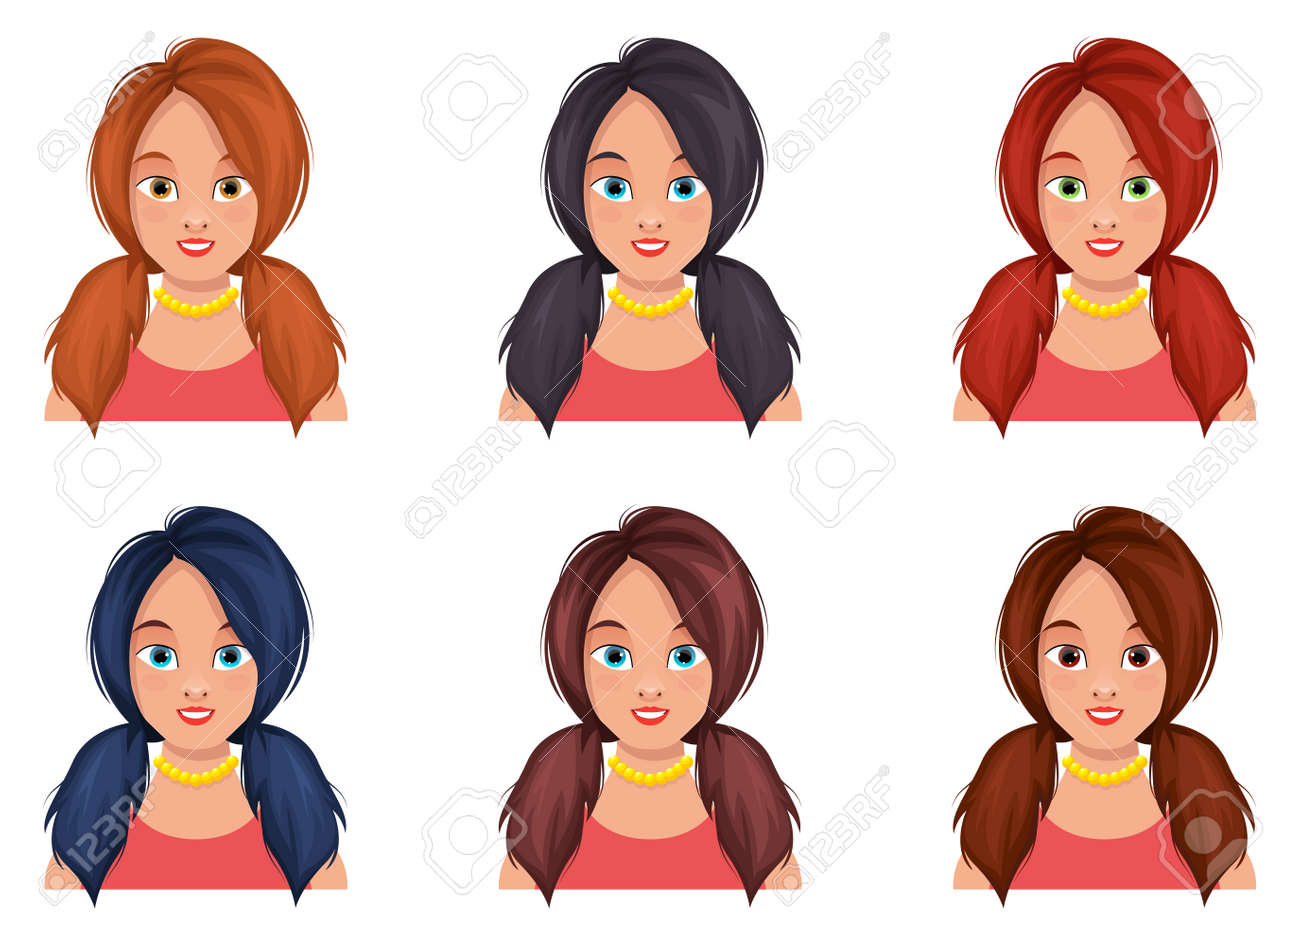 Woman face vector design illustration isolated on white background - 168188751